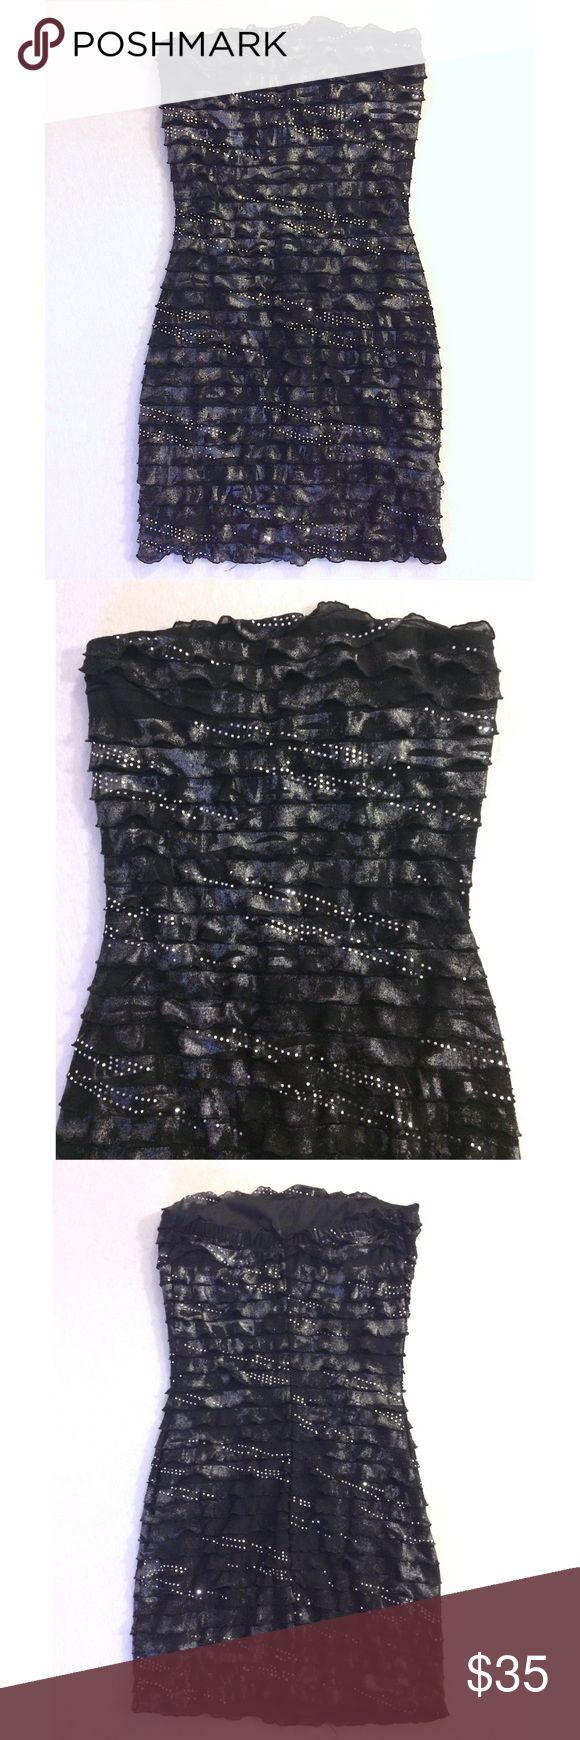 Frilly Metallic Body Con Dress Black and silver metallic Body con dress with layered frills. Ruby Rox Dresses Strapless